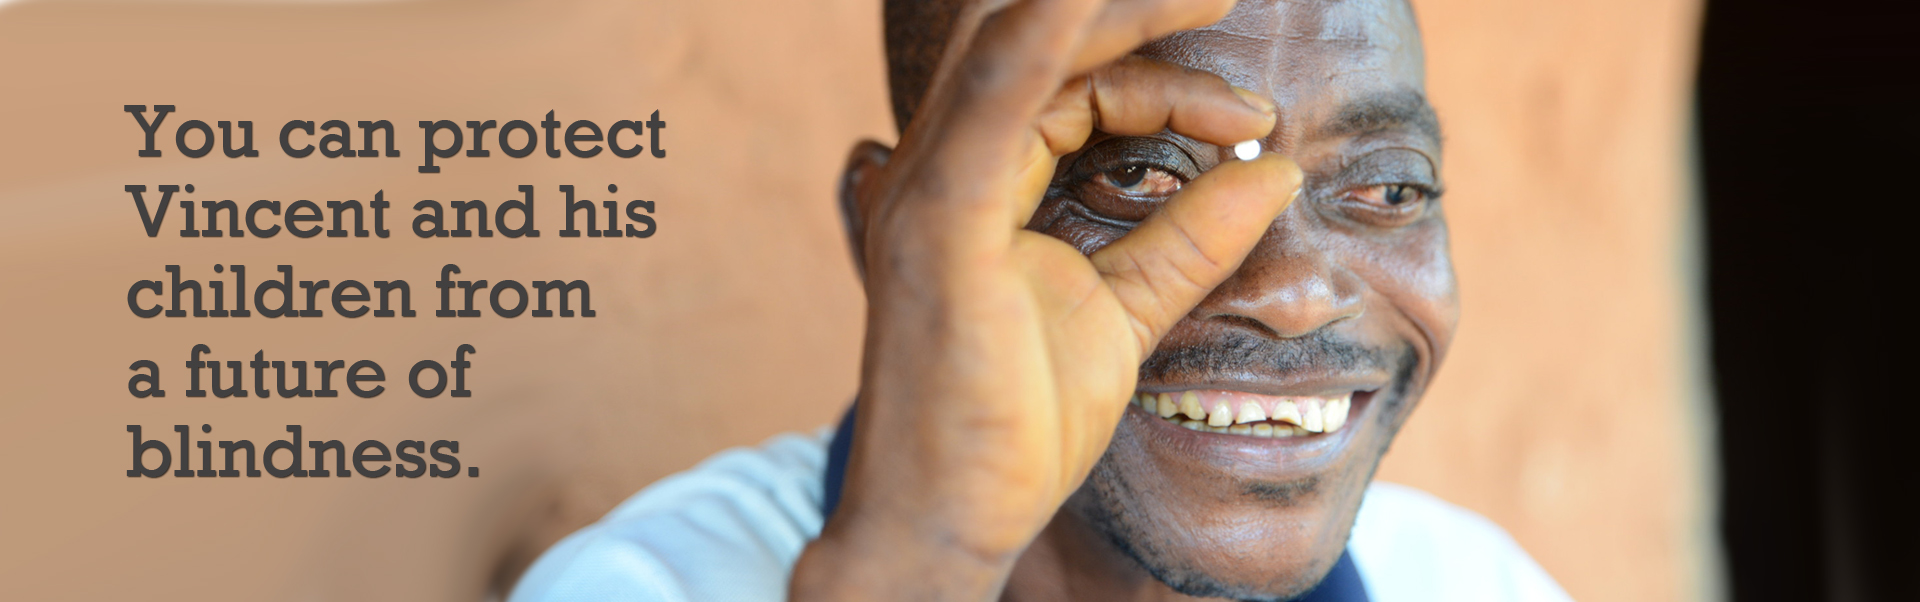 Vincent has river blindness. Now he wants to protect his children from contracting it.